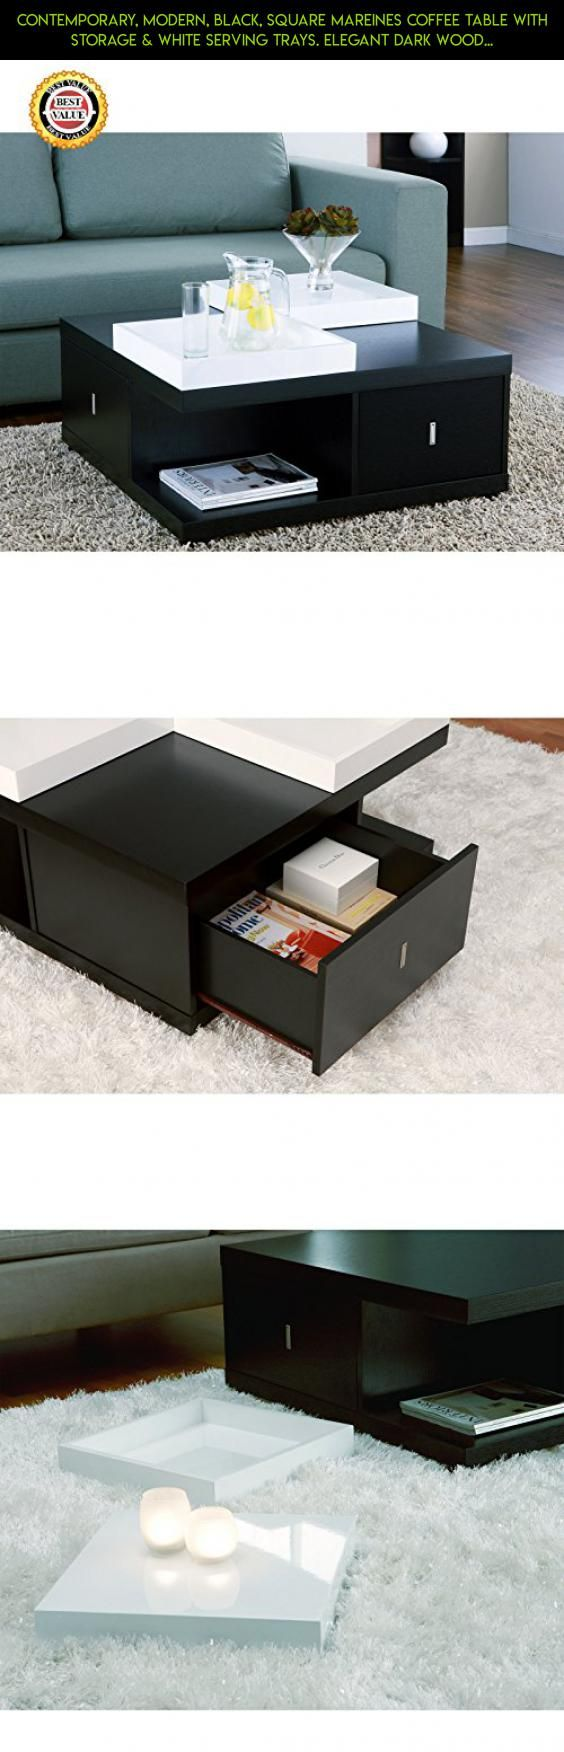 CONTEMPORARY, Modern, Black, Square Mareines Coffee Table with Storage & White Serving Trays. ELEGANT Dark Wood Color & Design Pairs Well with Furniture of ALL Sizes for Living Room & Patio Furniture. BEST Gift Ideas for Weddings, Housewarming, Birthday & HOLIDAYS! #drone #furniture #technology #racing #gadgets #plans #patio #fpv #tech #ideas #products #shopping #parts #kit #camera